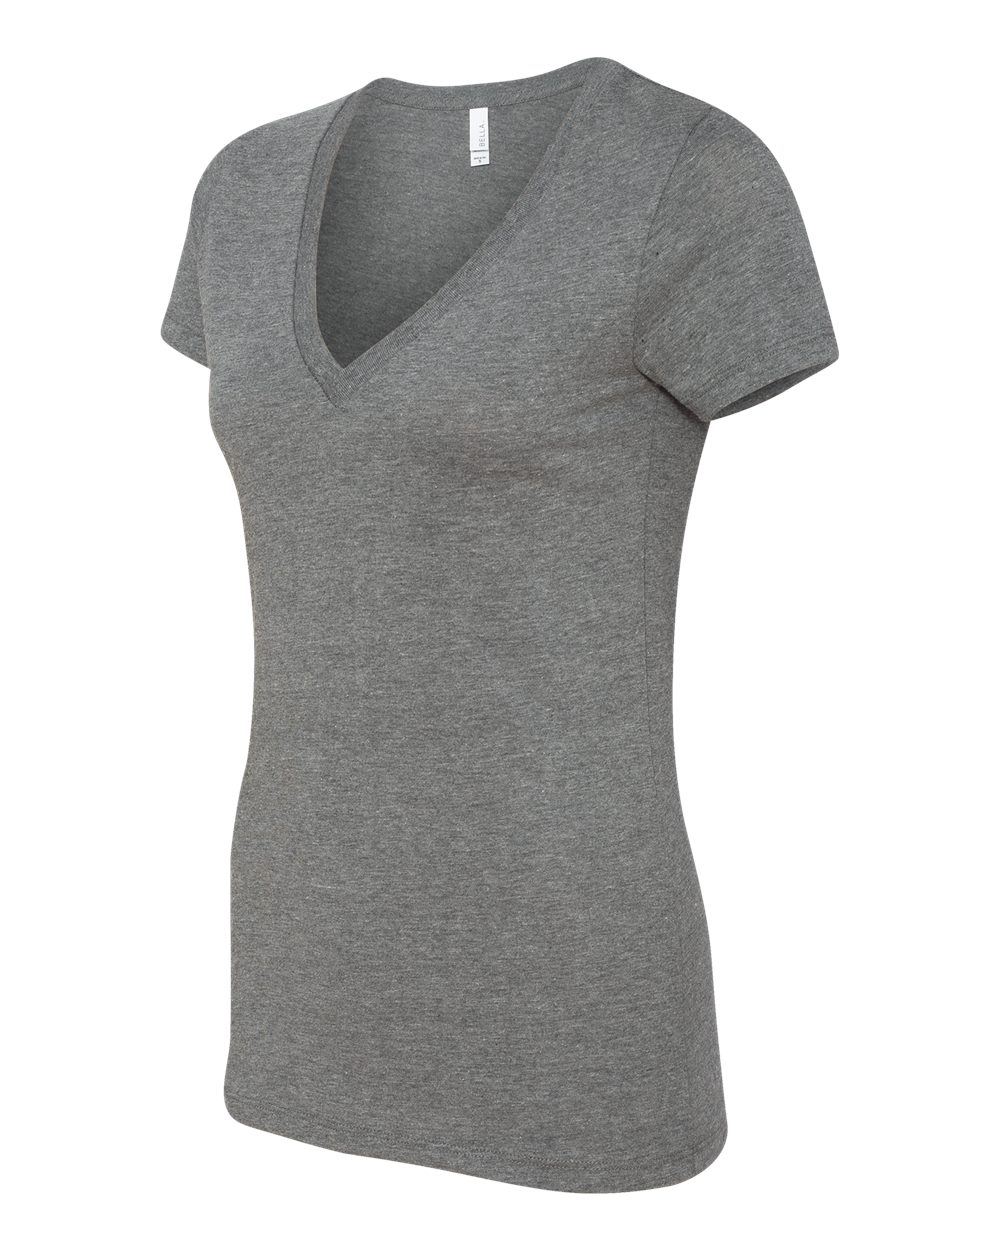 Bella-Canvas-Women-039-s-Jersey-Short-Sleeve-Deep-V-Neck-T-Shirt-B6035-S-2XL thumbnail 48